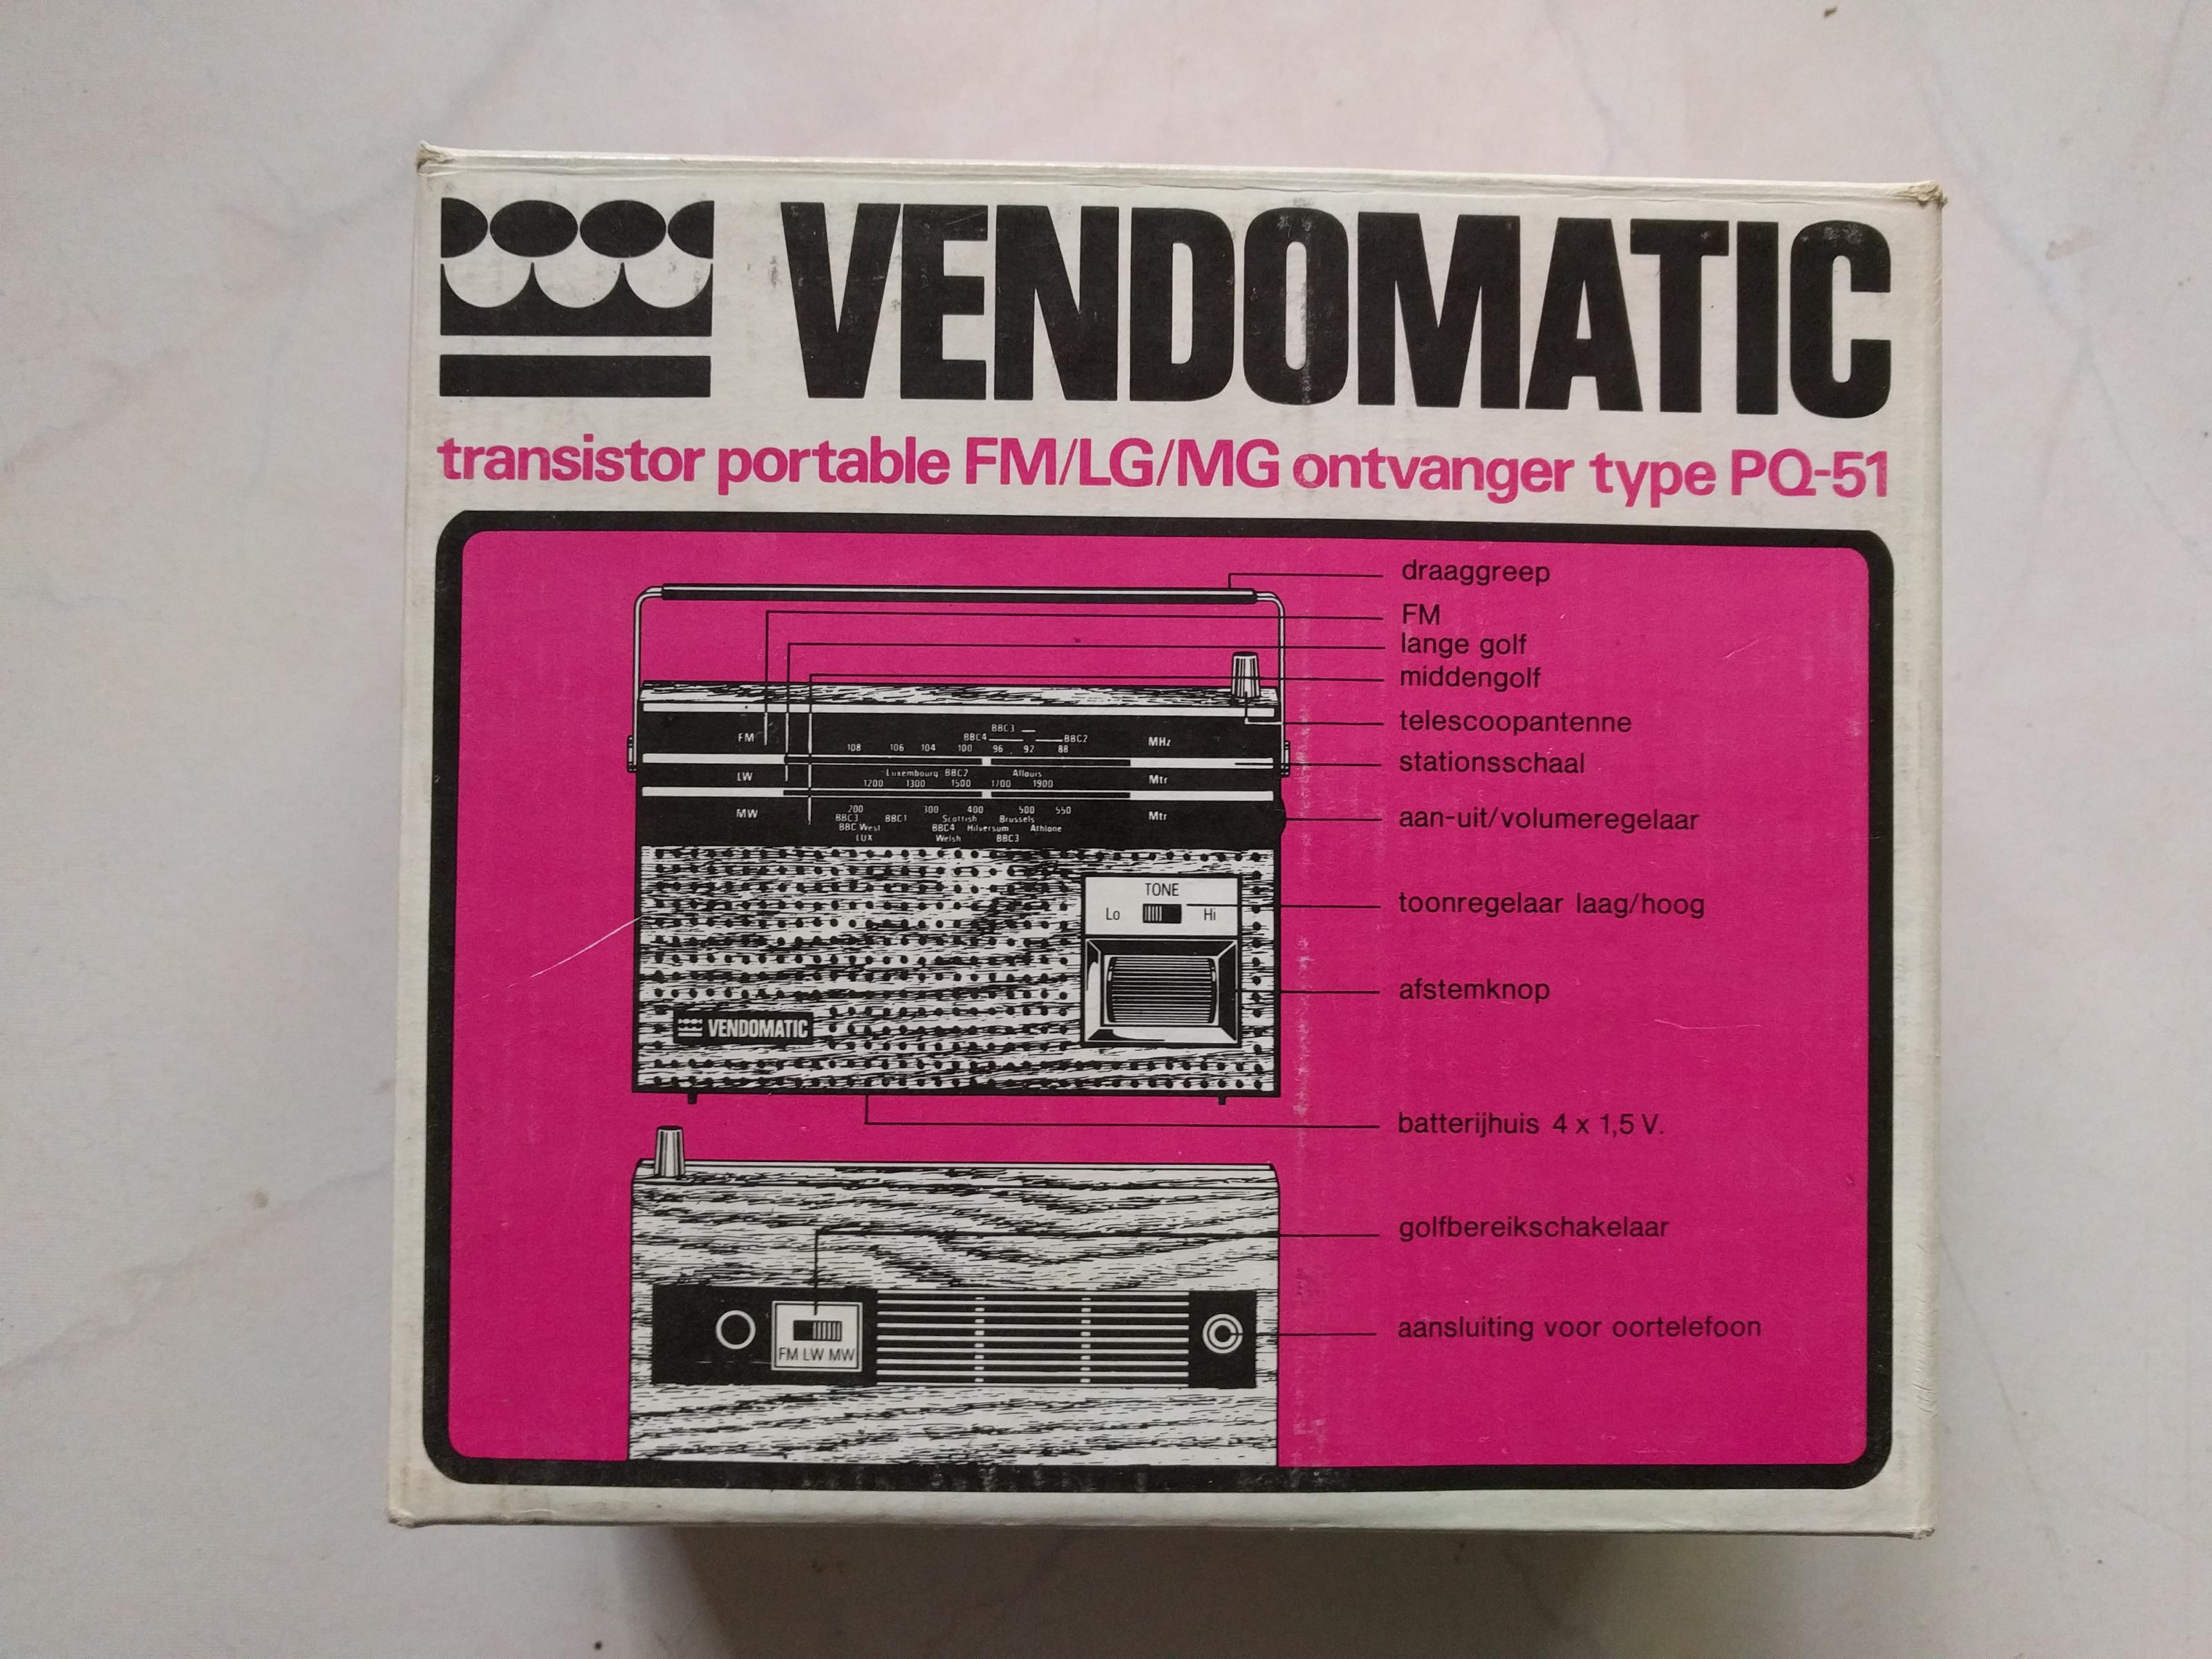 Vendomatic